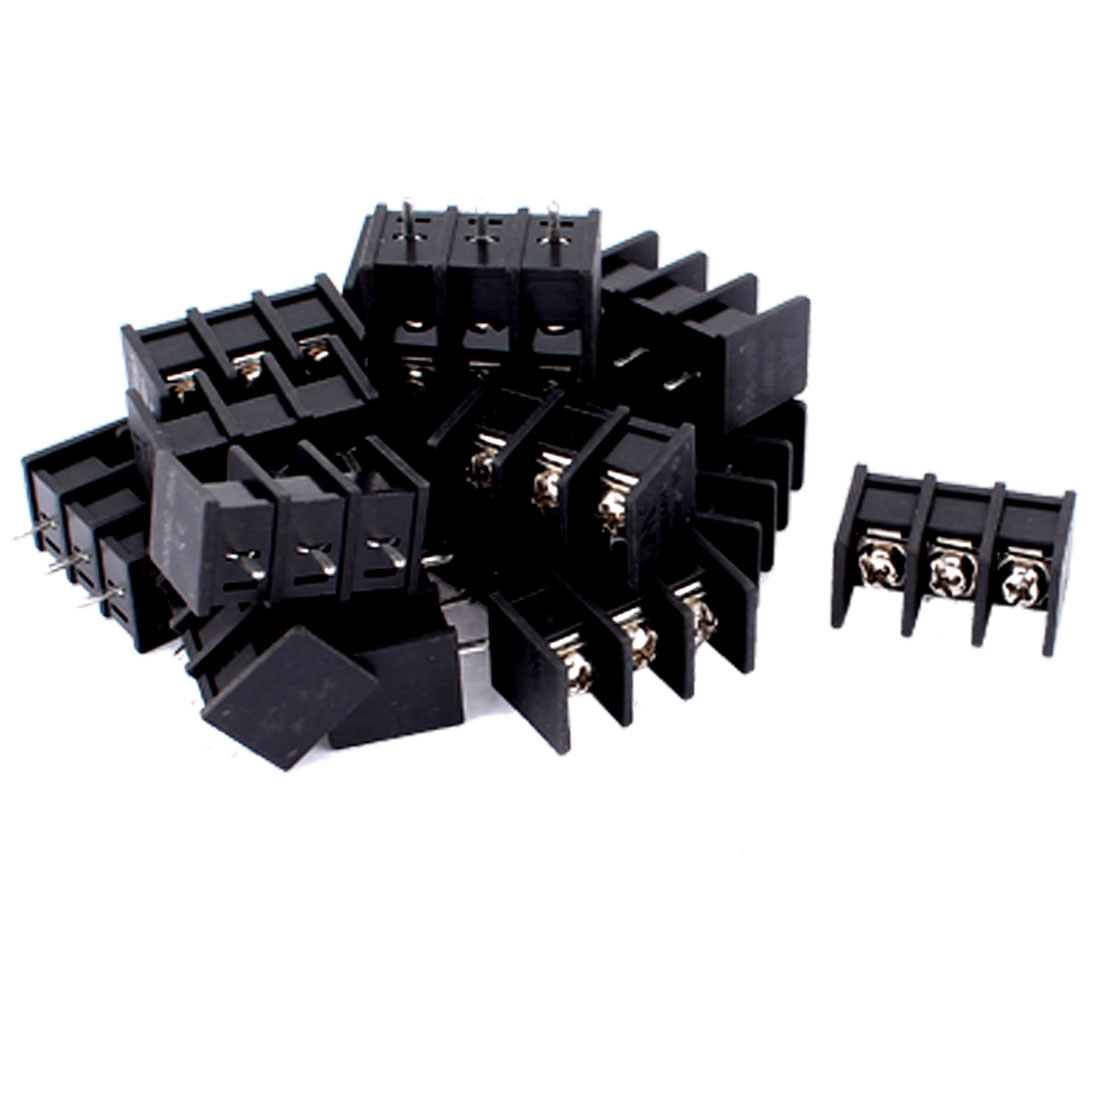 30 Pcs 3 Way PCB Screw Terminal Block Connector 9.5mm for 12-22AWG Wire